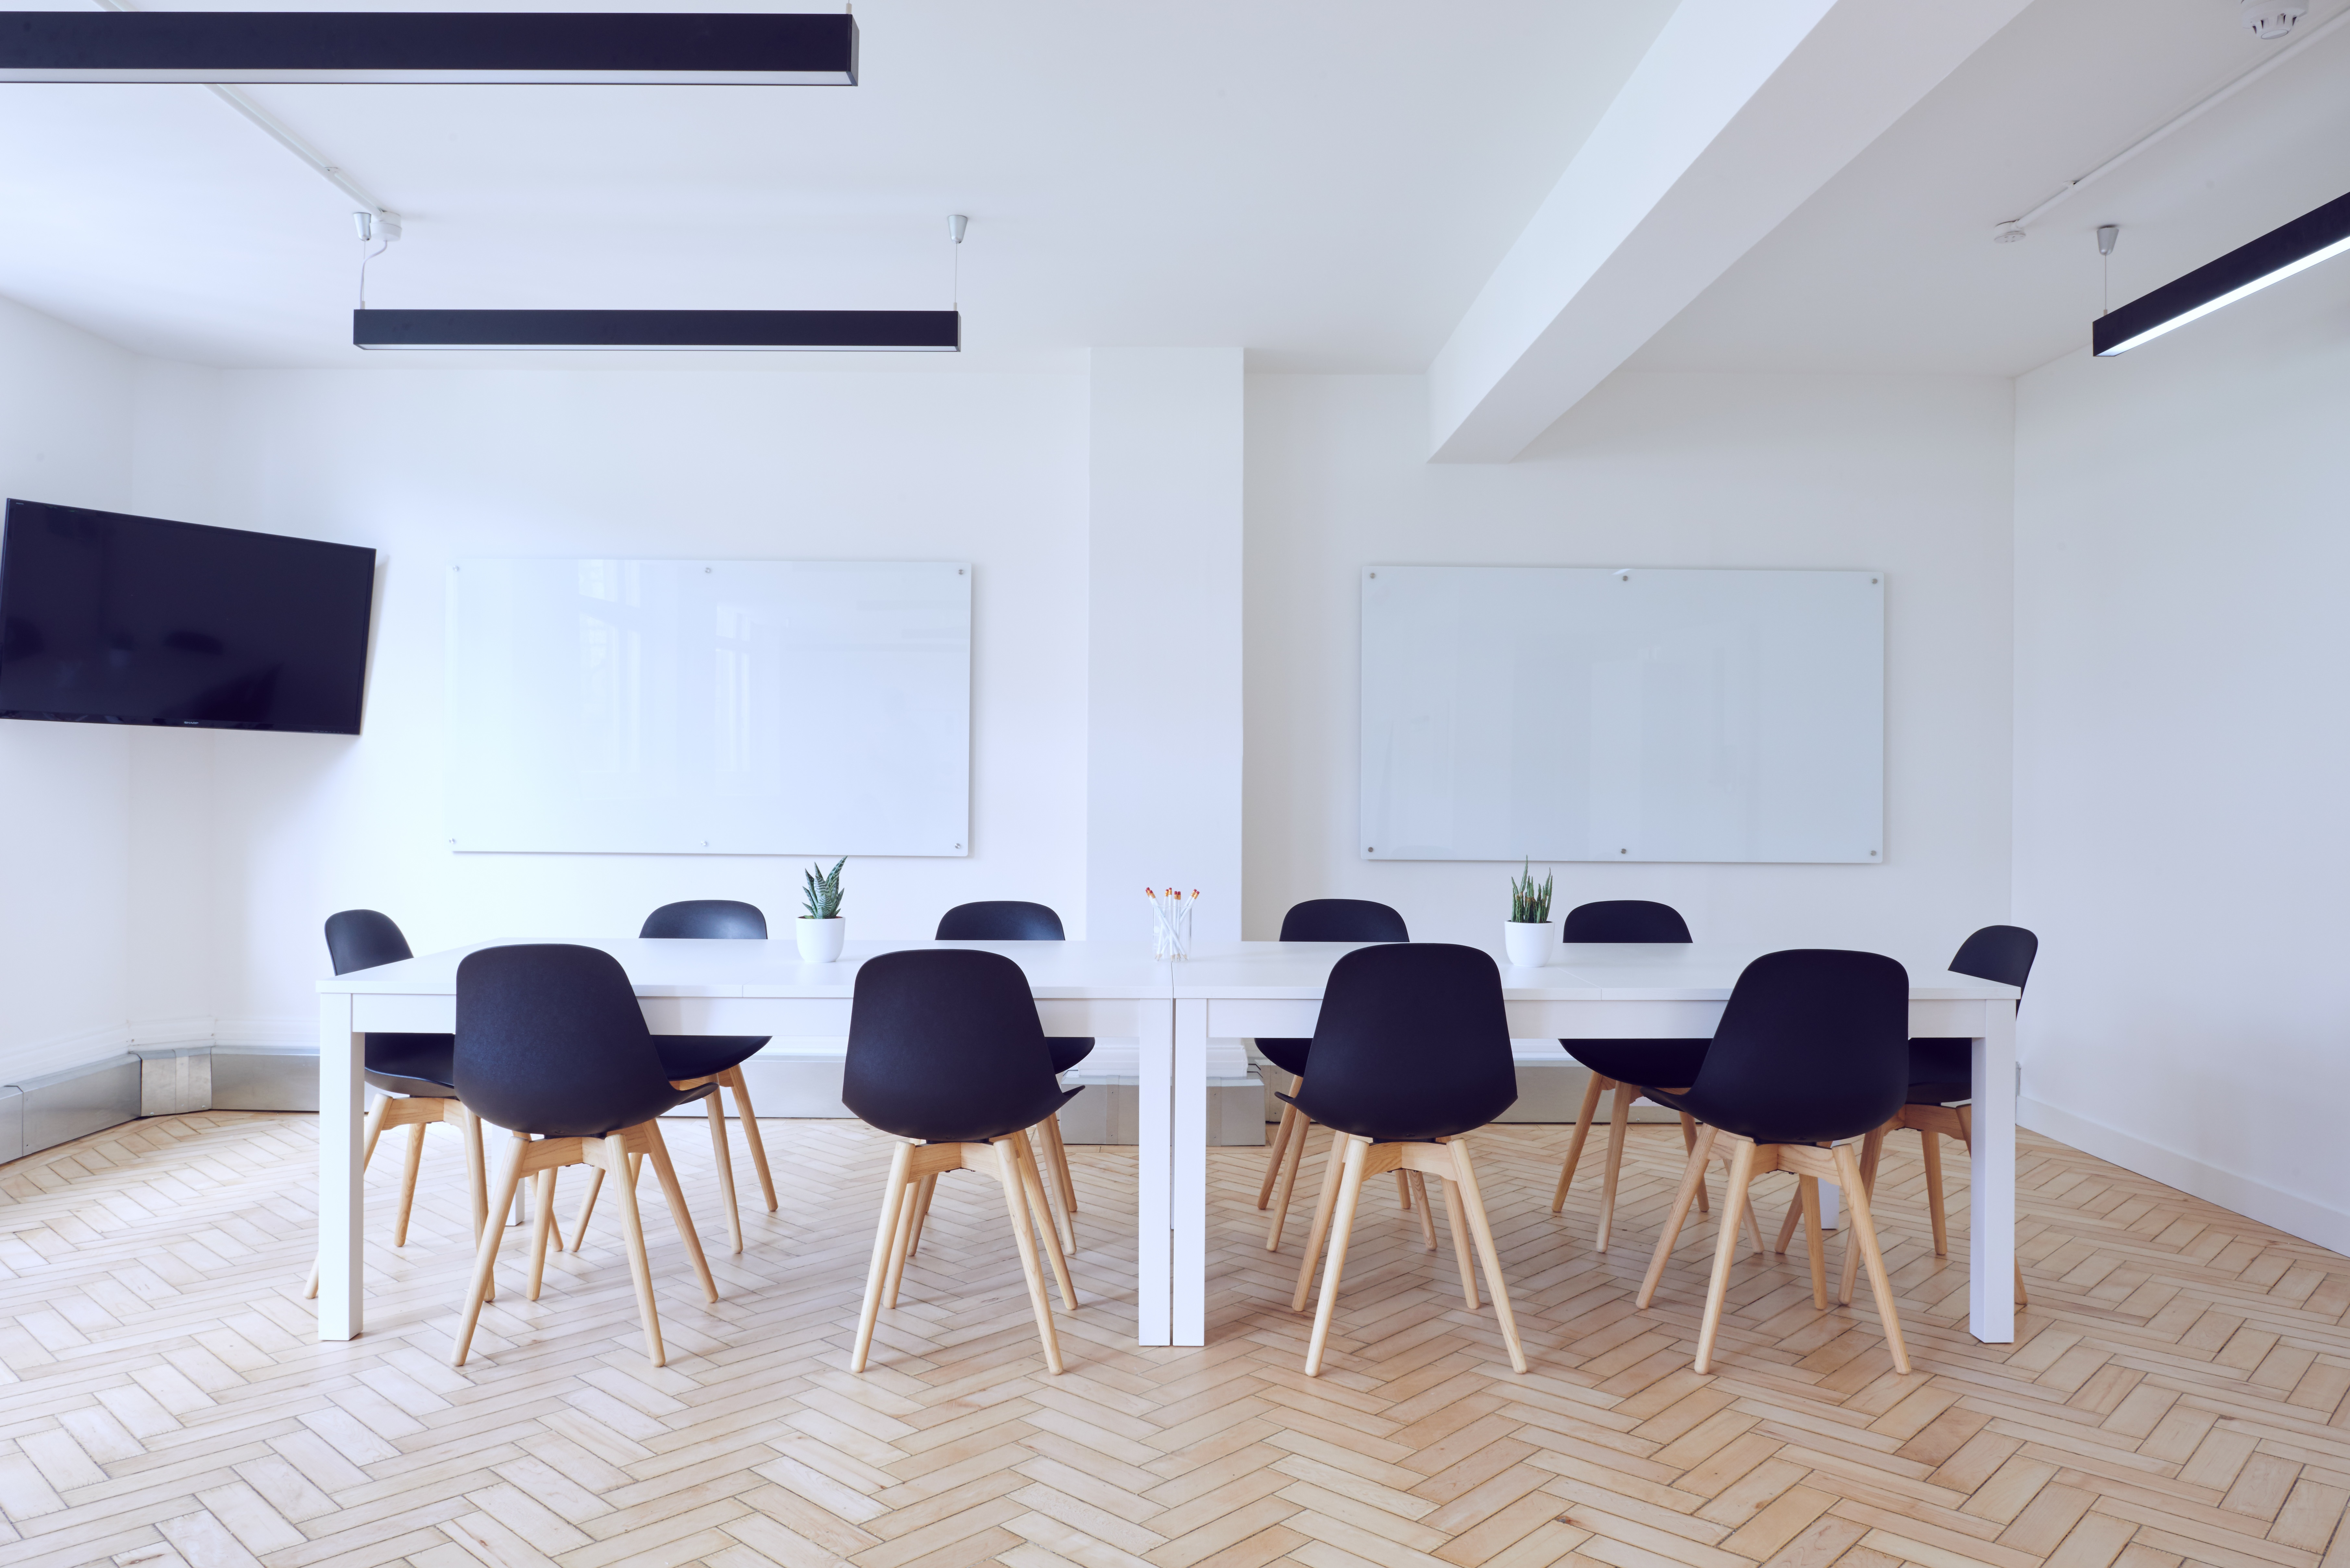 company buyer persona with open and airy meeting room